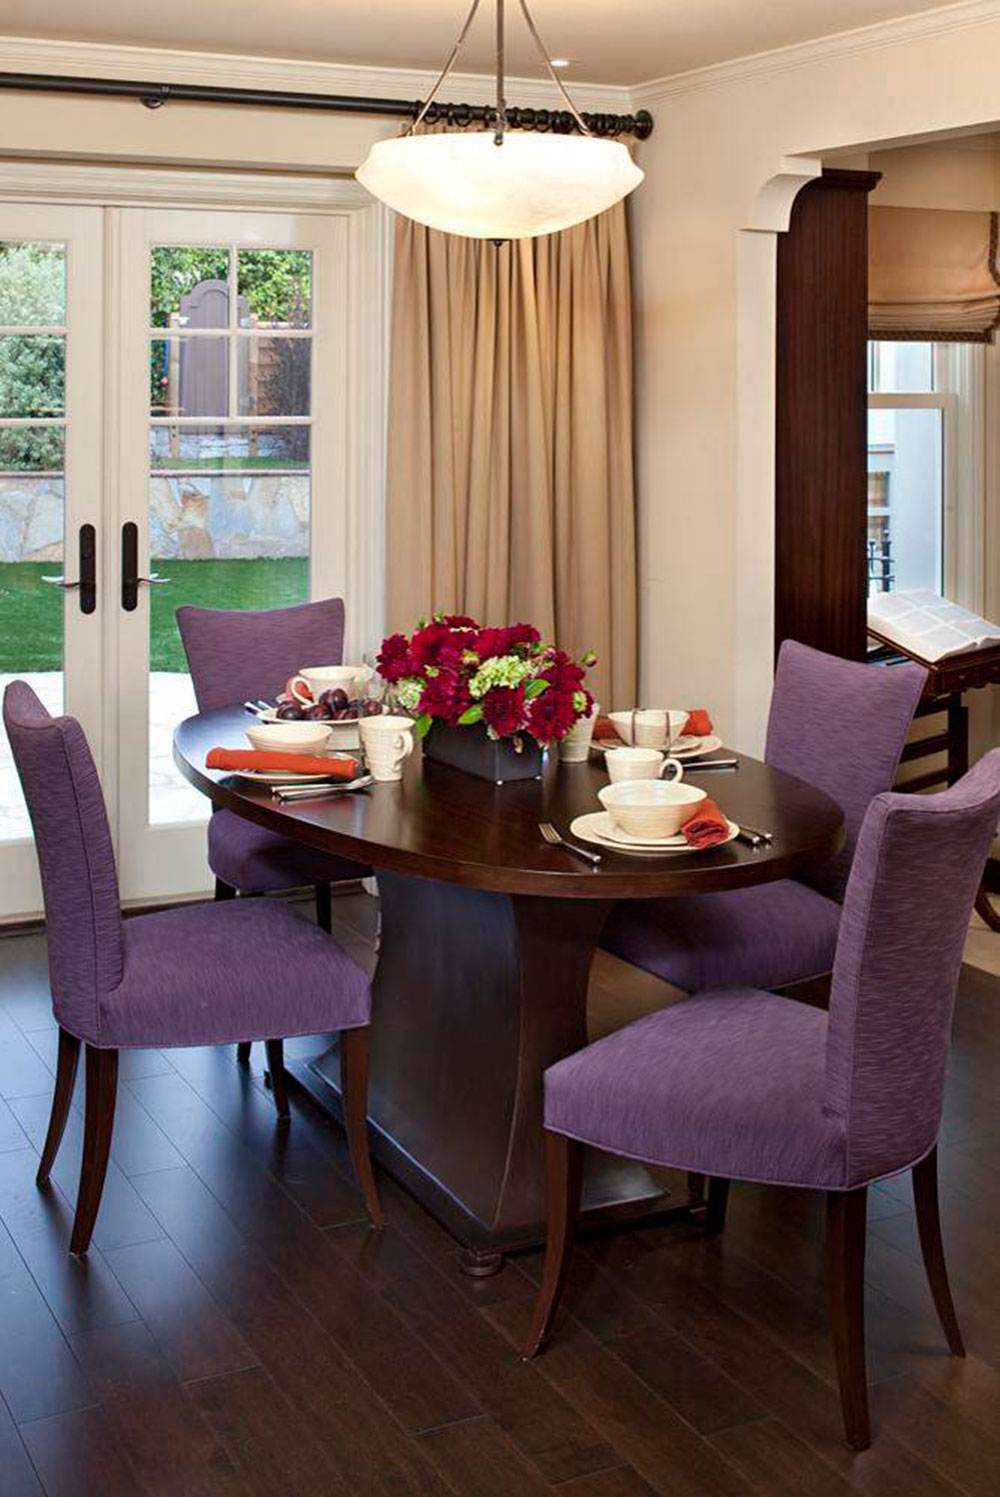 Tips for decorating small dining rooms10 tips for decorating small dining rooms